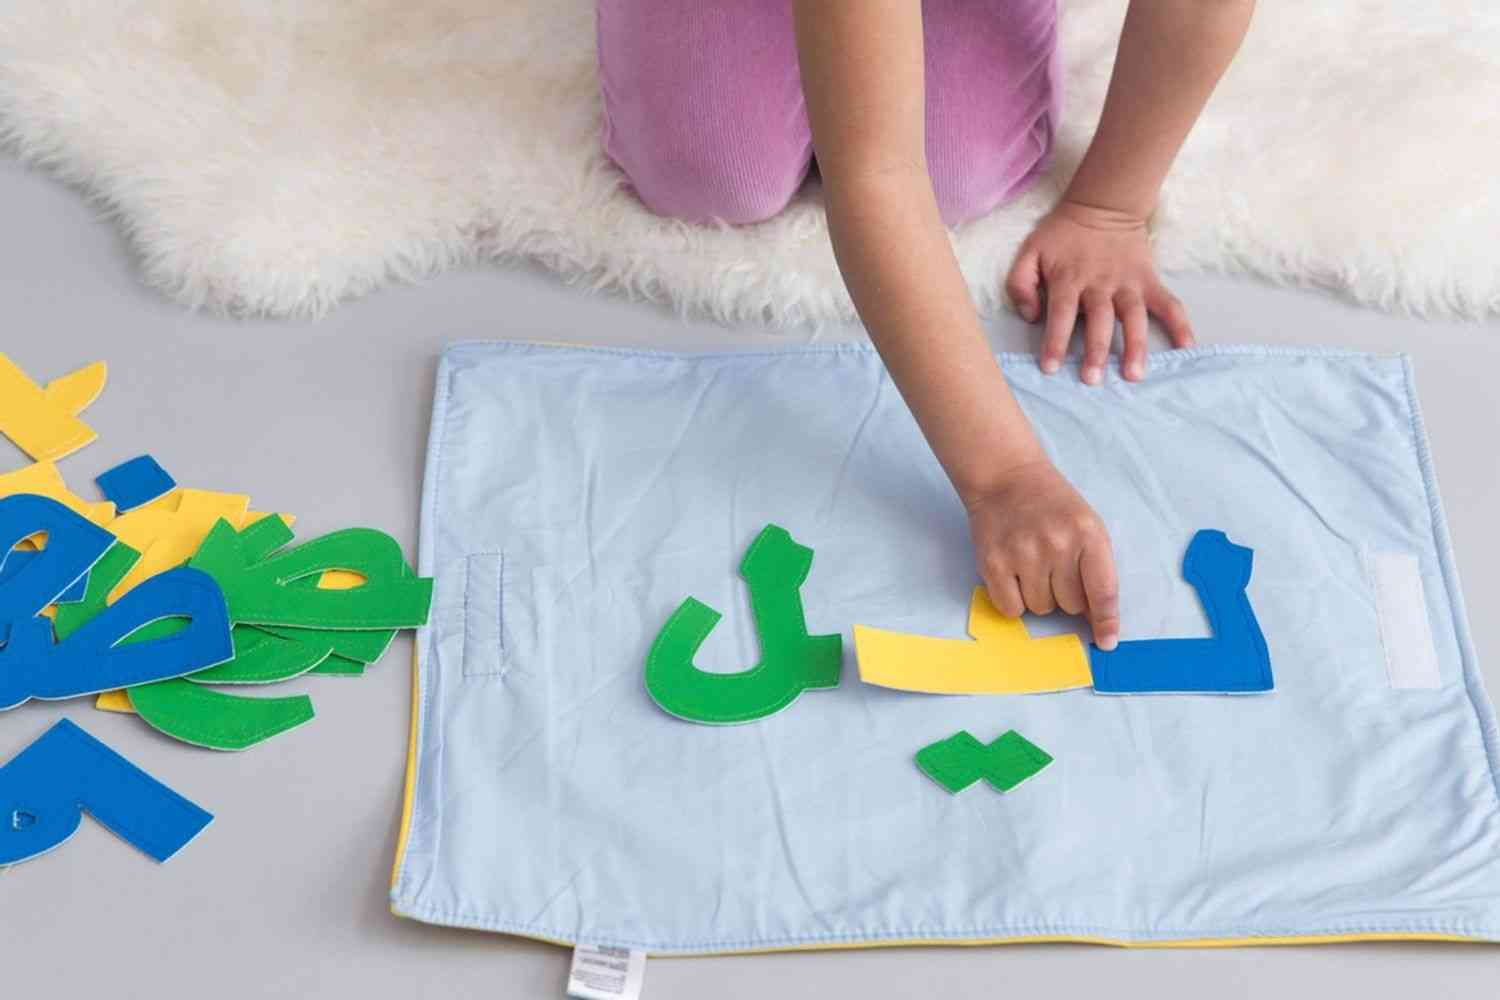 Arabic Spelling Learning Mat Toy For